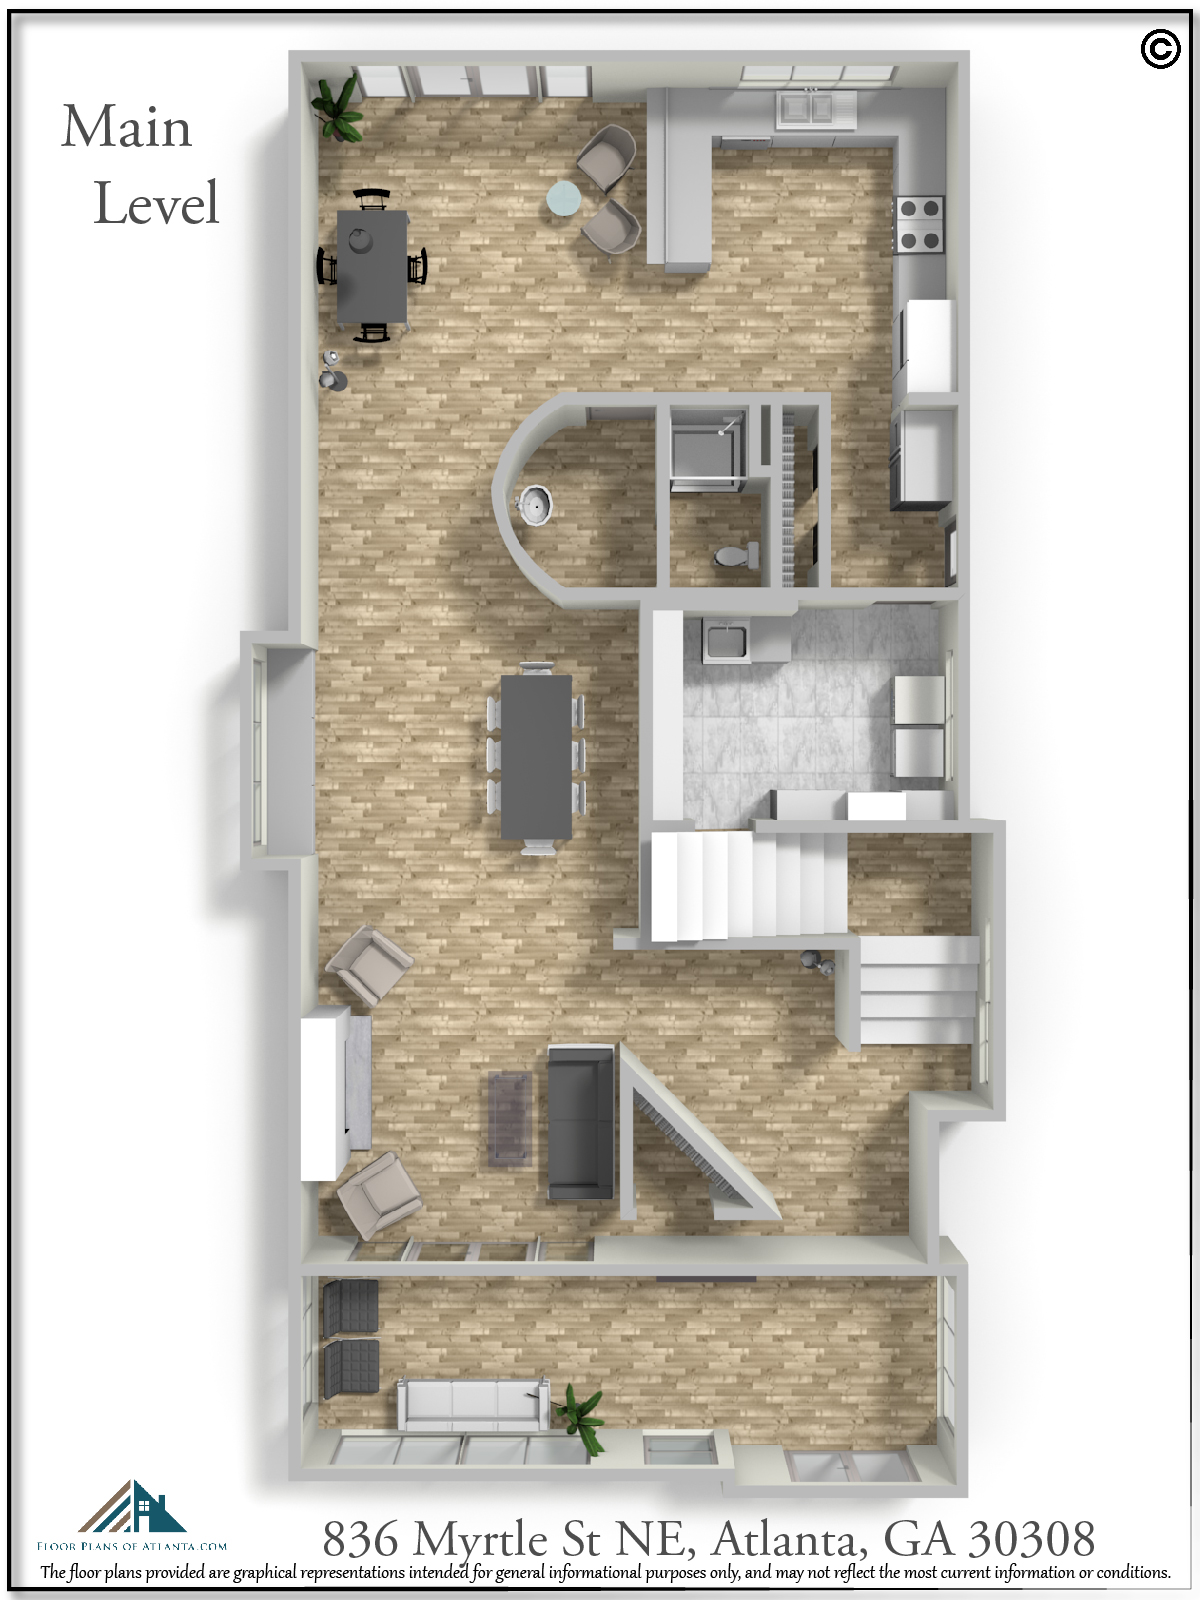 Main Level Floor Plan - Perspective #4